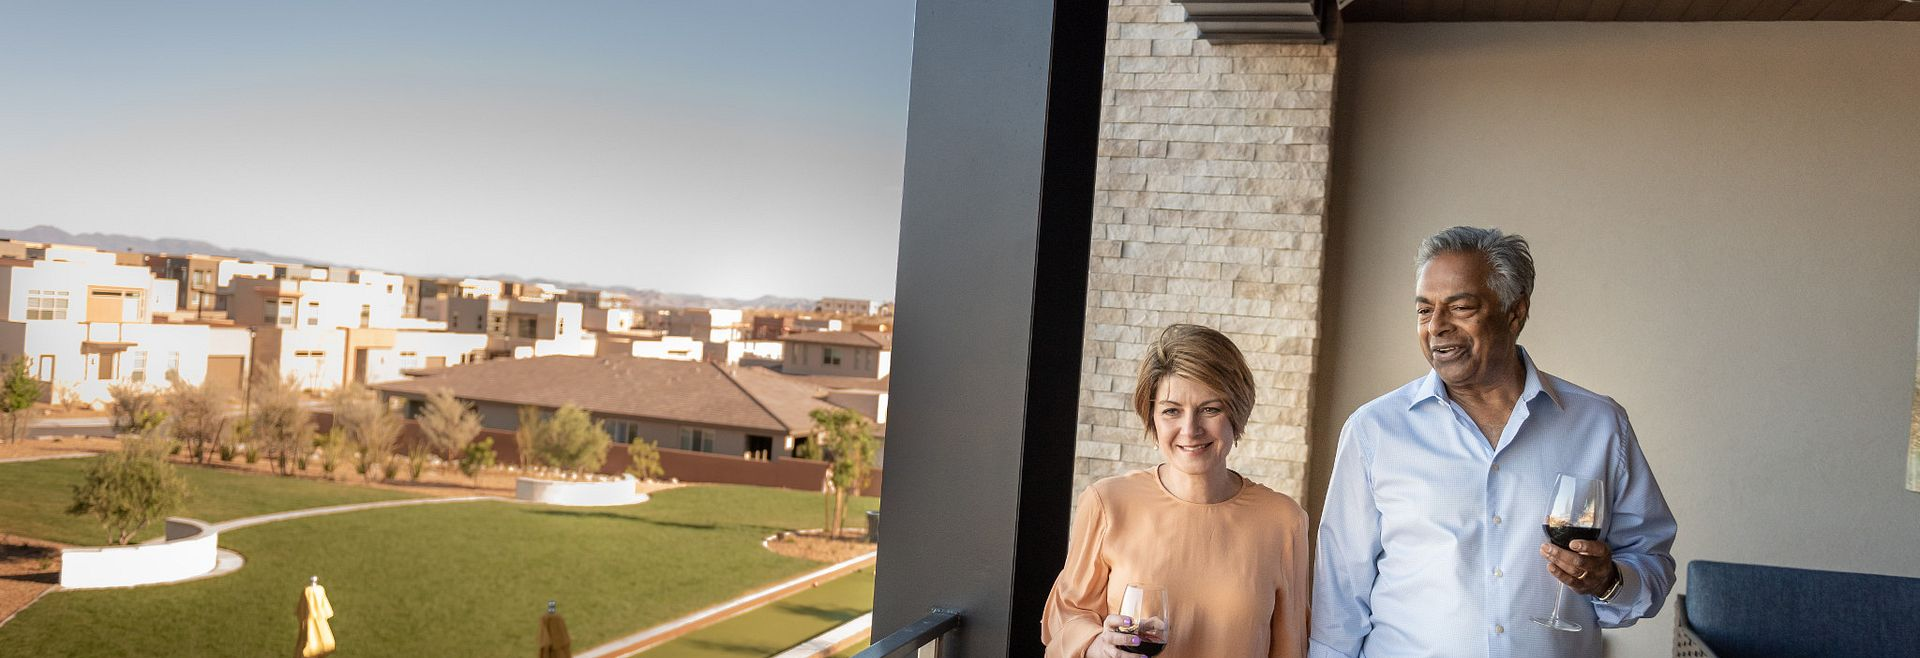 Trilogy Summerlin Homeowners Enjoying The Overlook